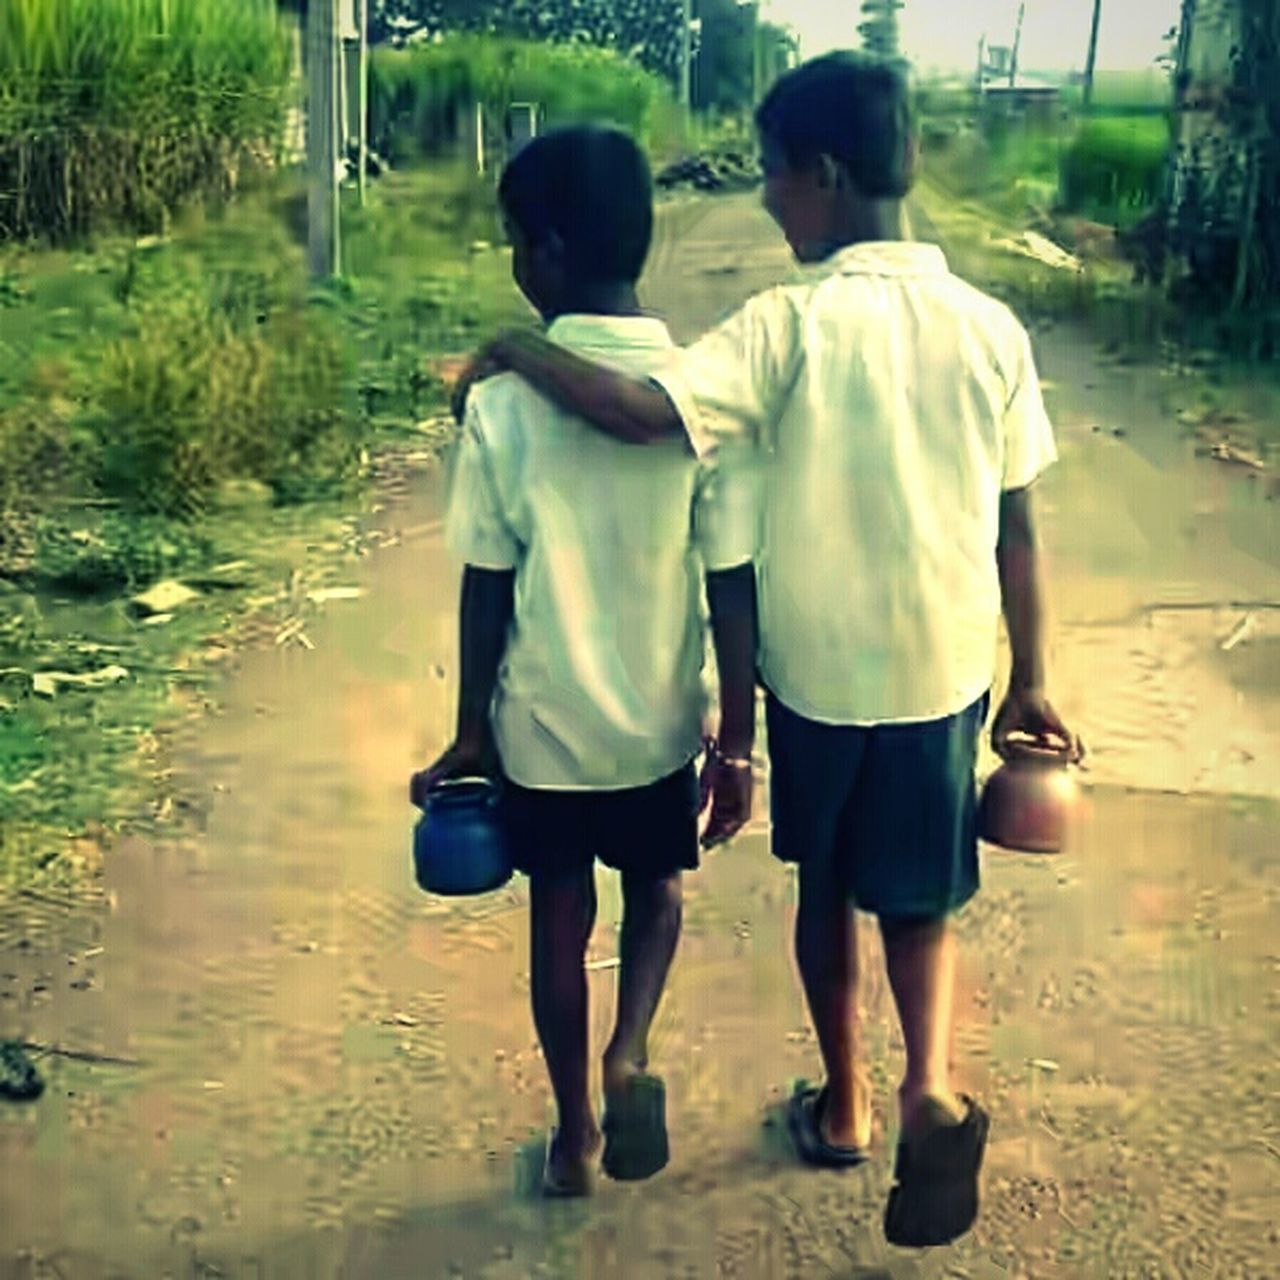 rear view, two people, togetherness, boys, walking, childhood, full length, child, males, bonding, real people, day, outdoors, people, adult